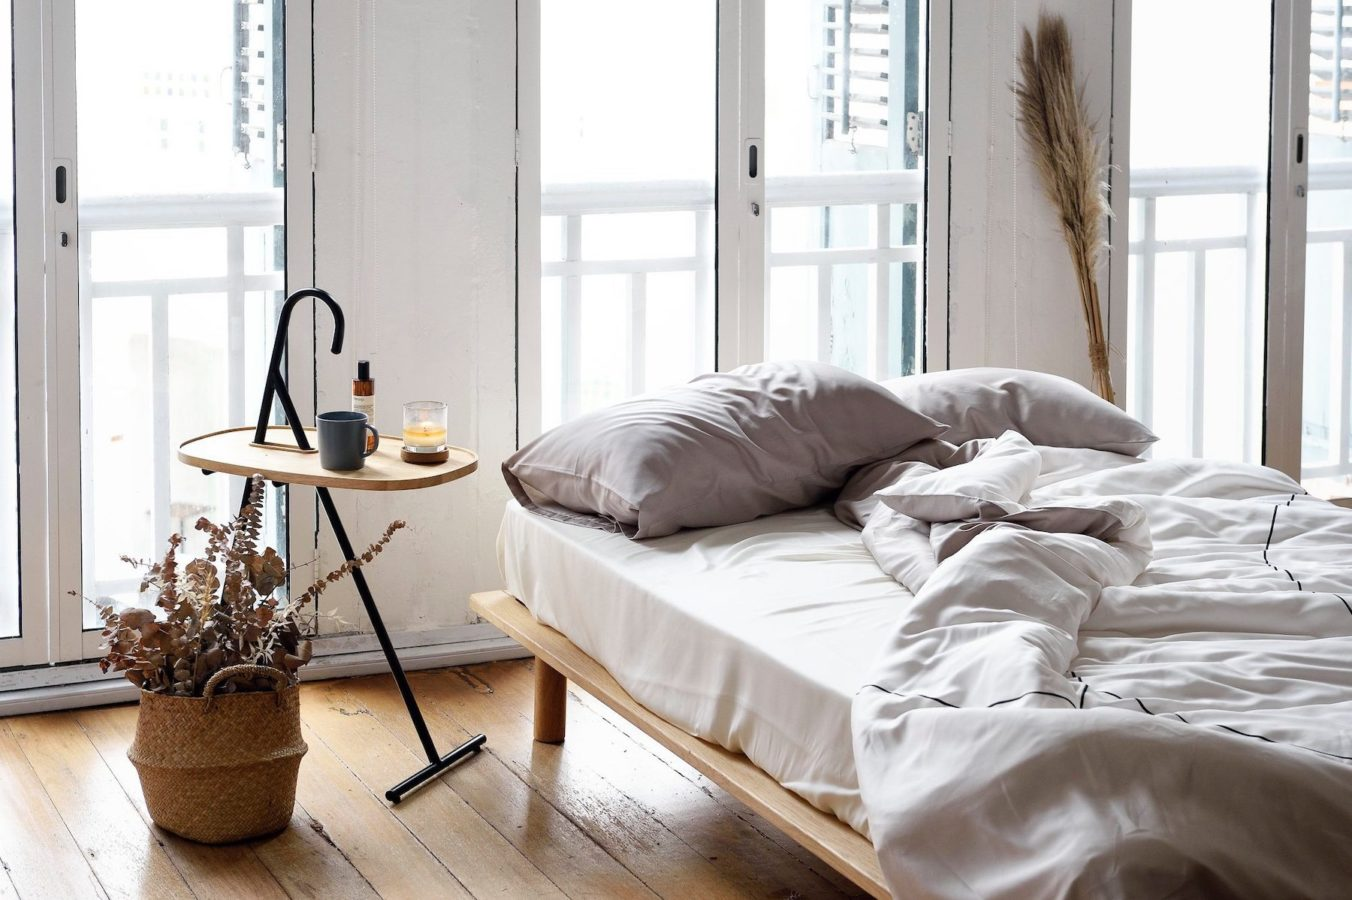 The Best Local Luxury Bedding Brands For A Better Night's Sleep